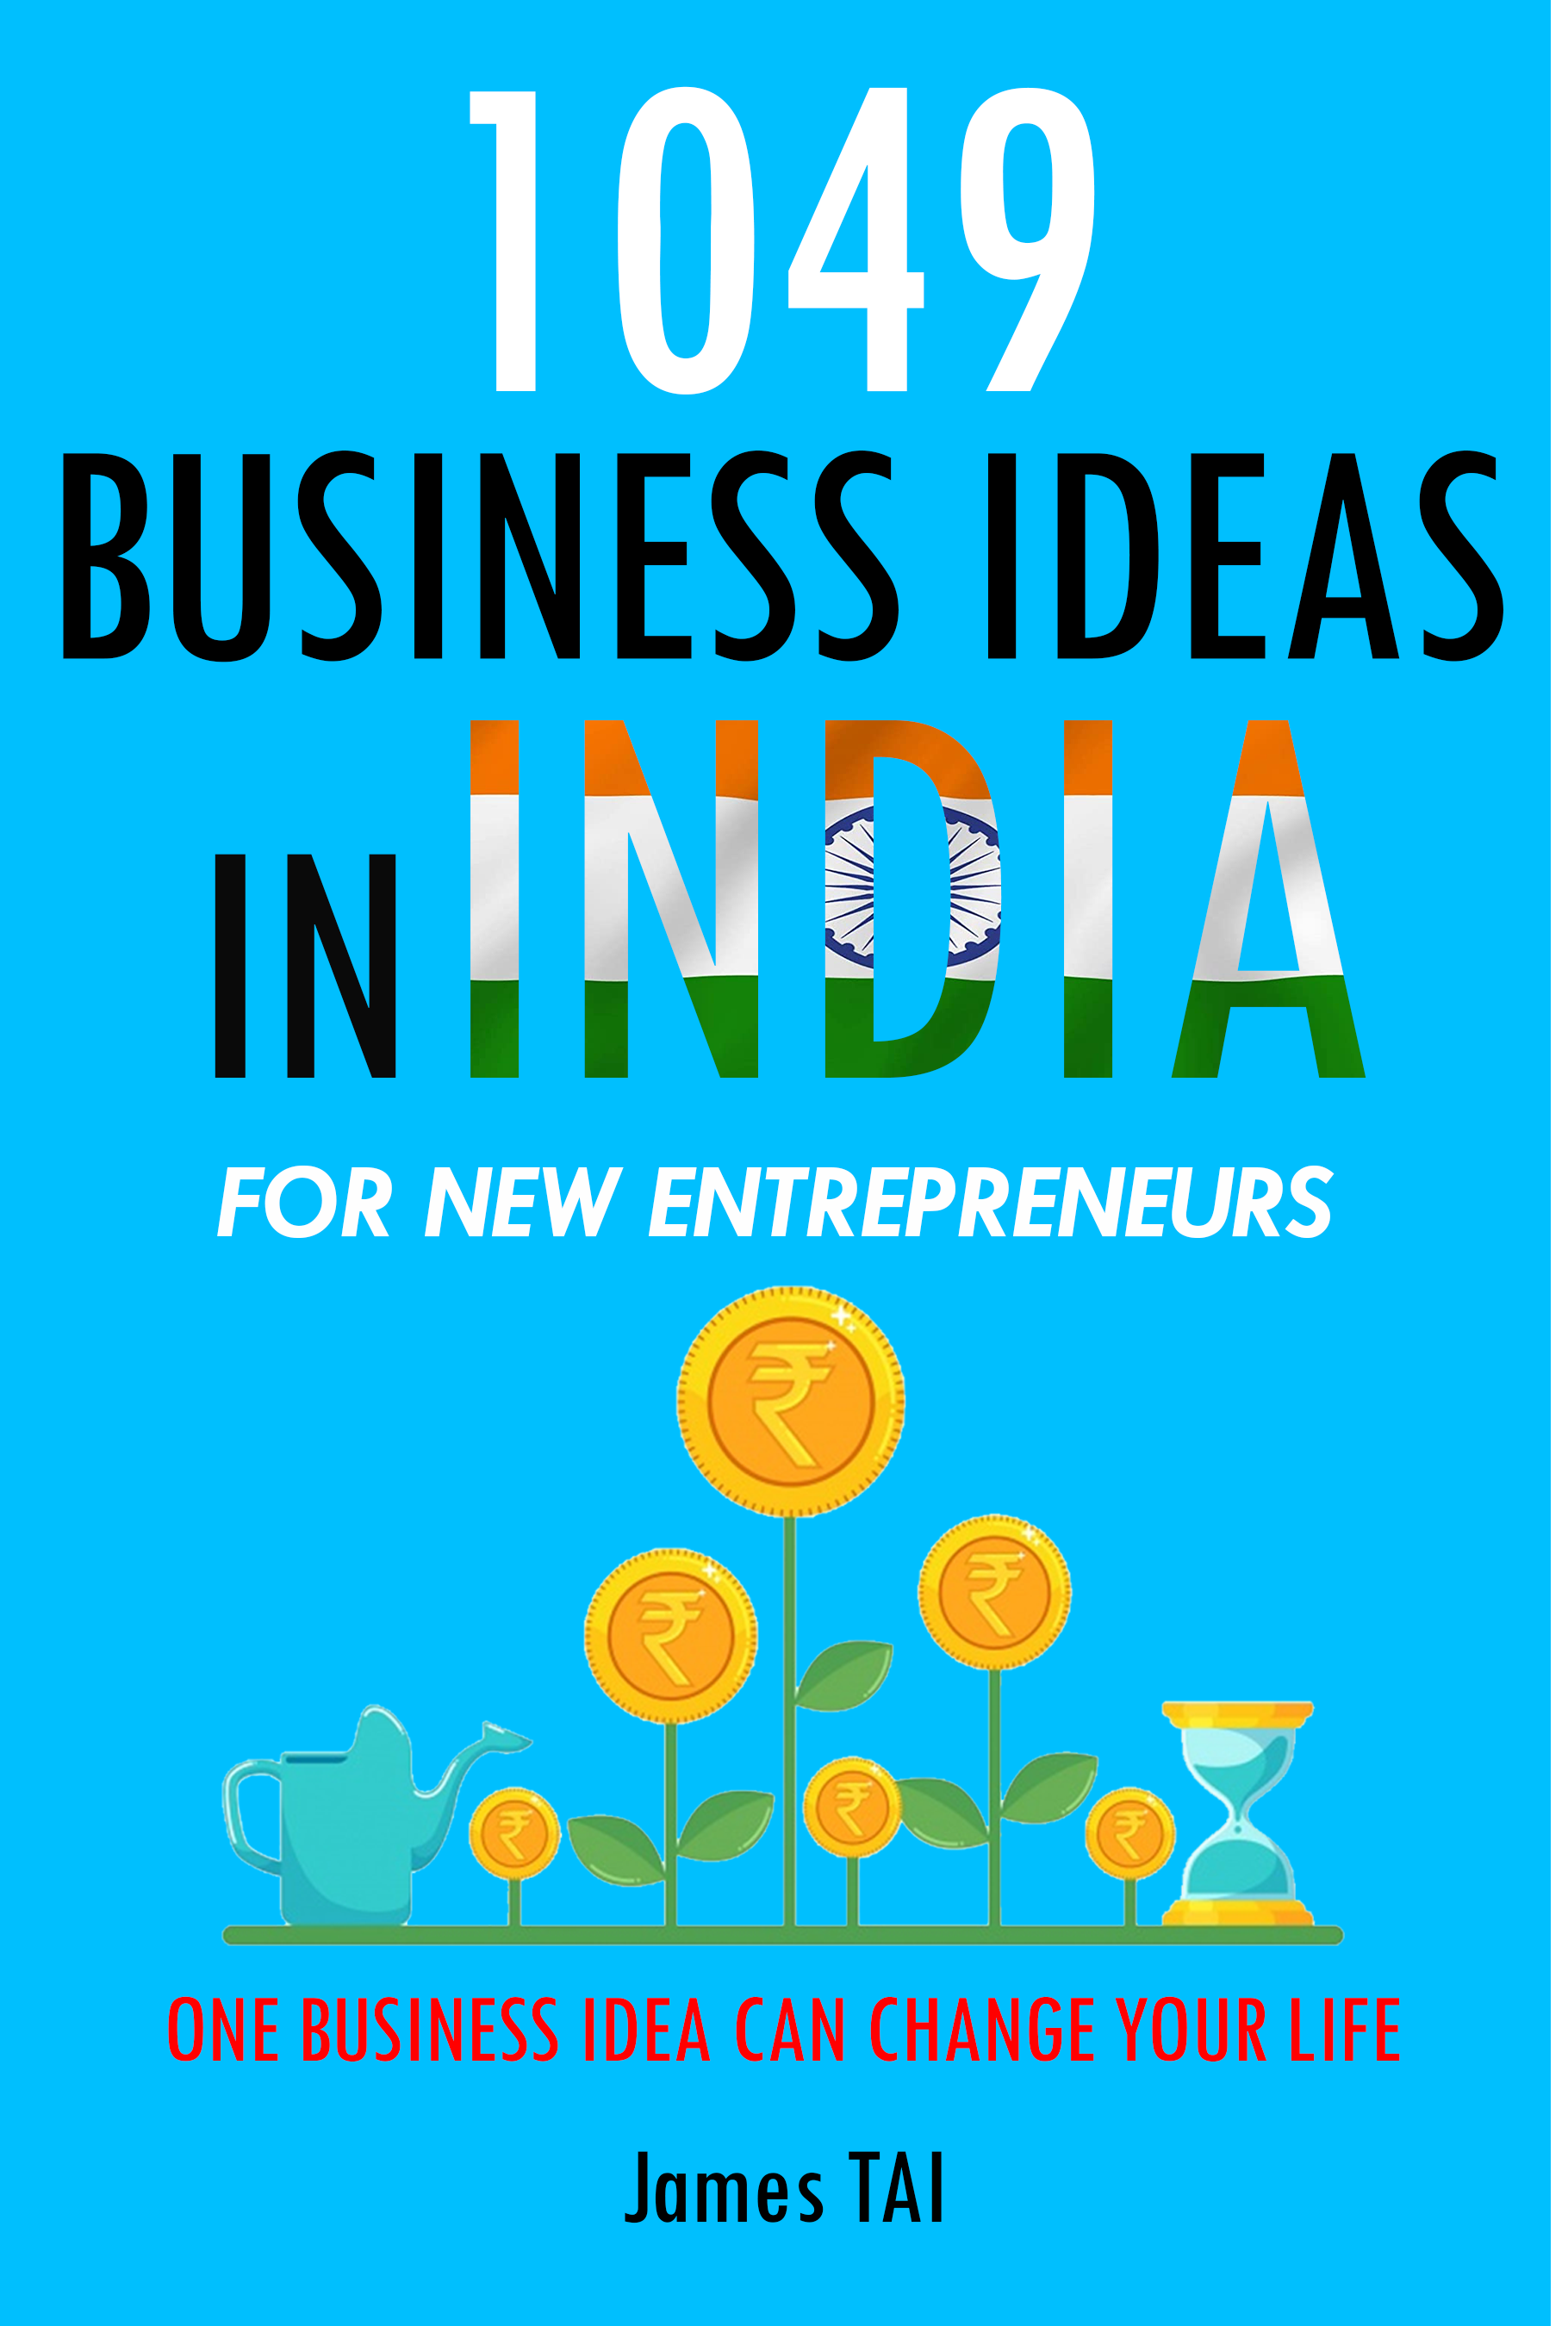 1049 Business Ideas in India For New Entrepreneurs